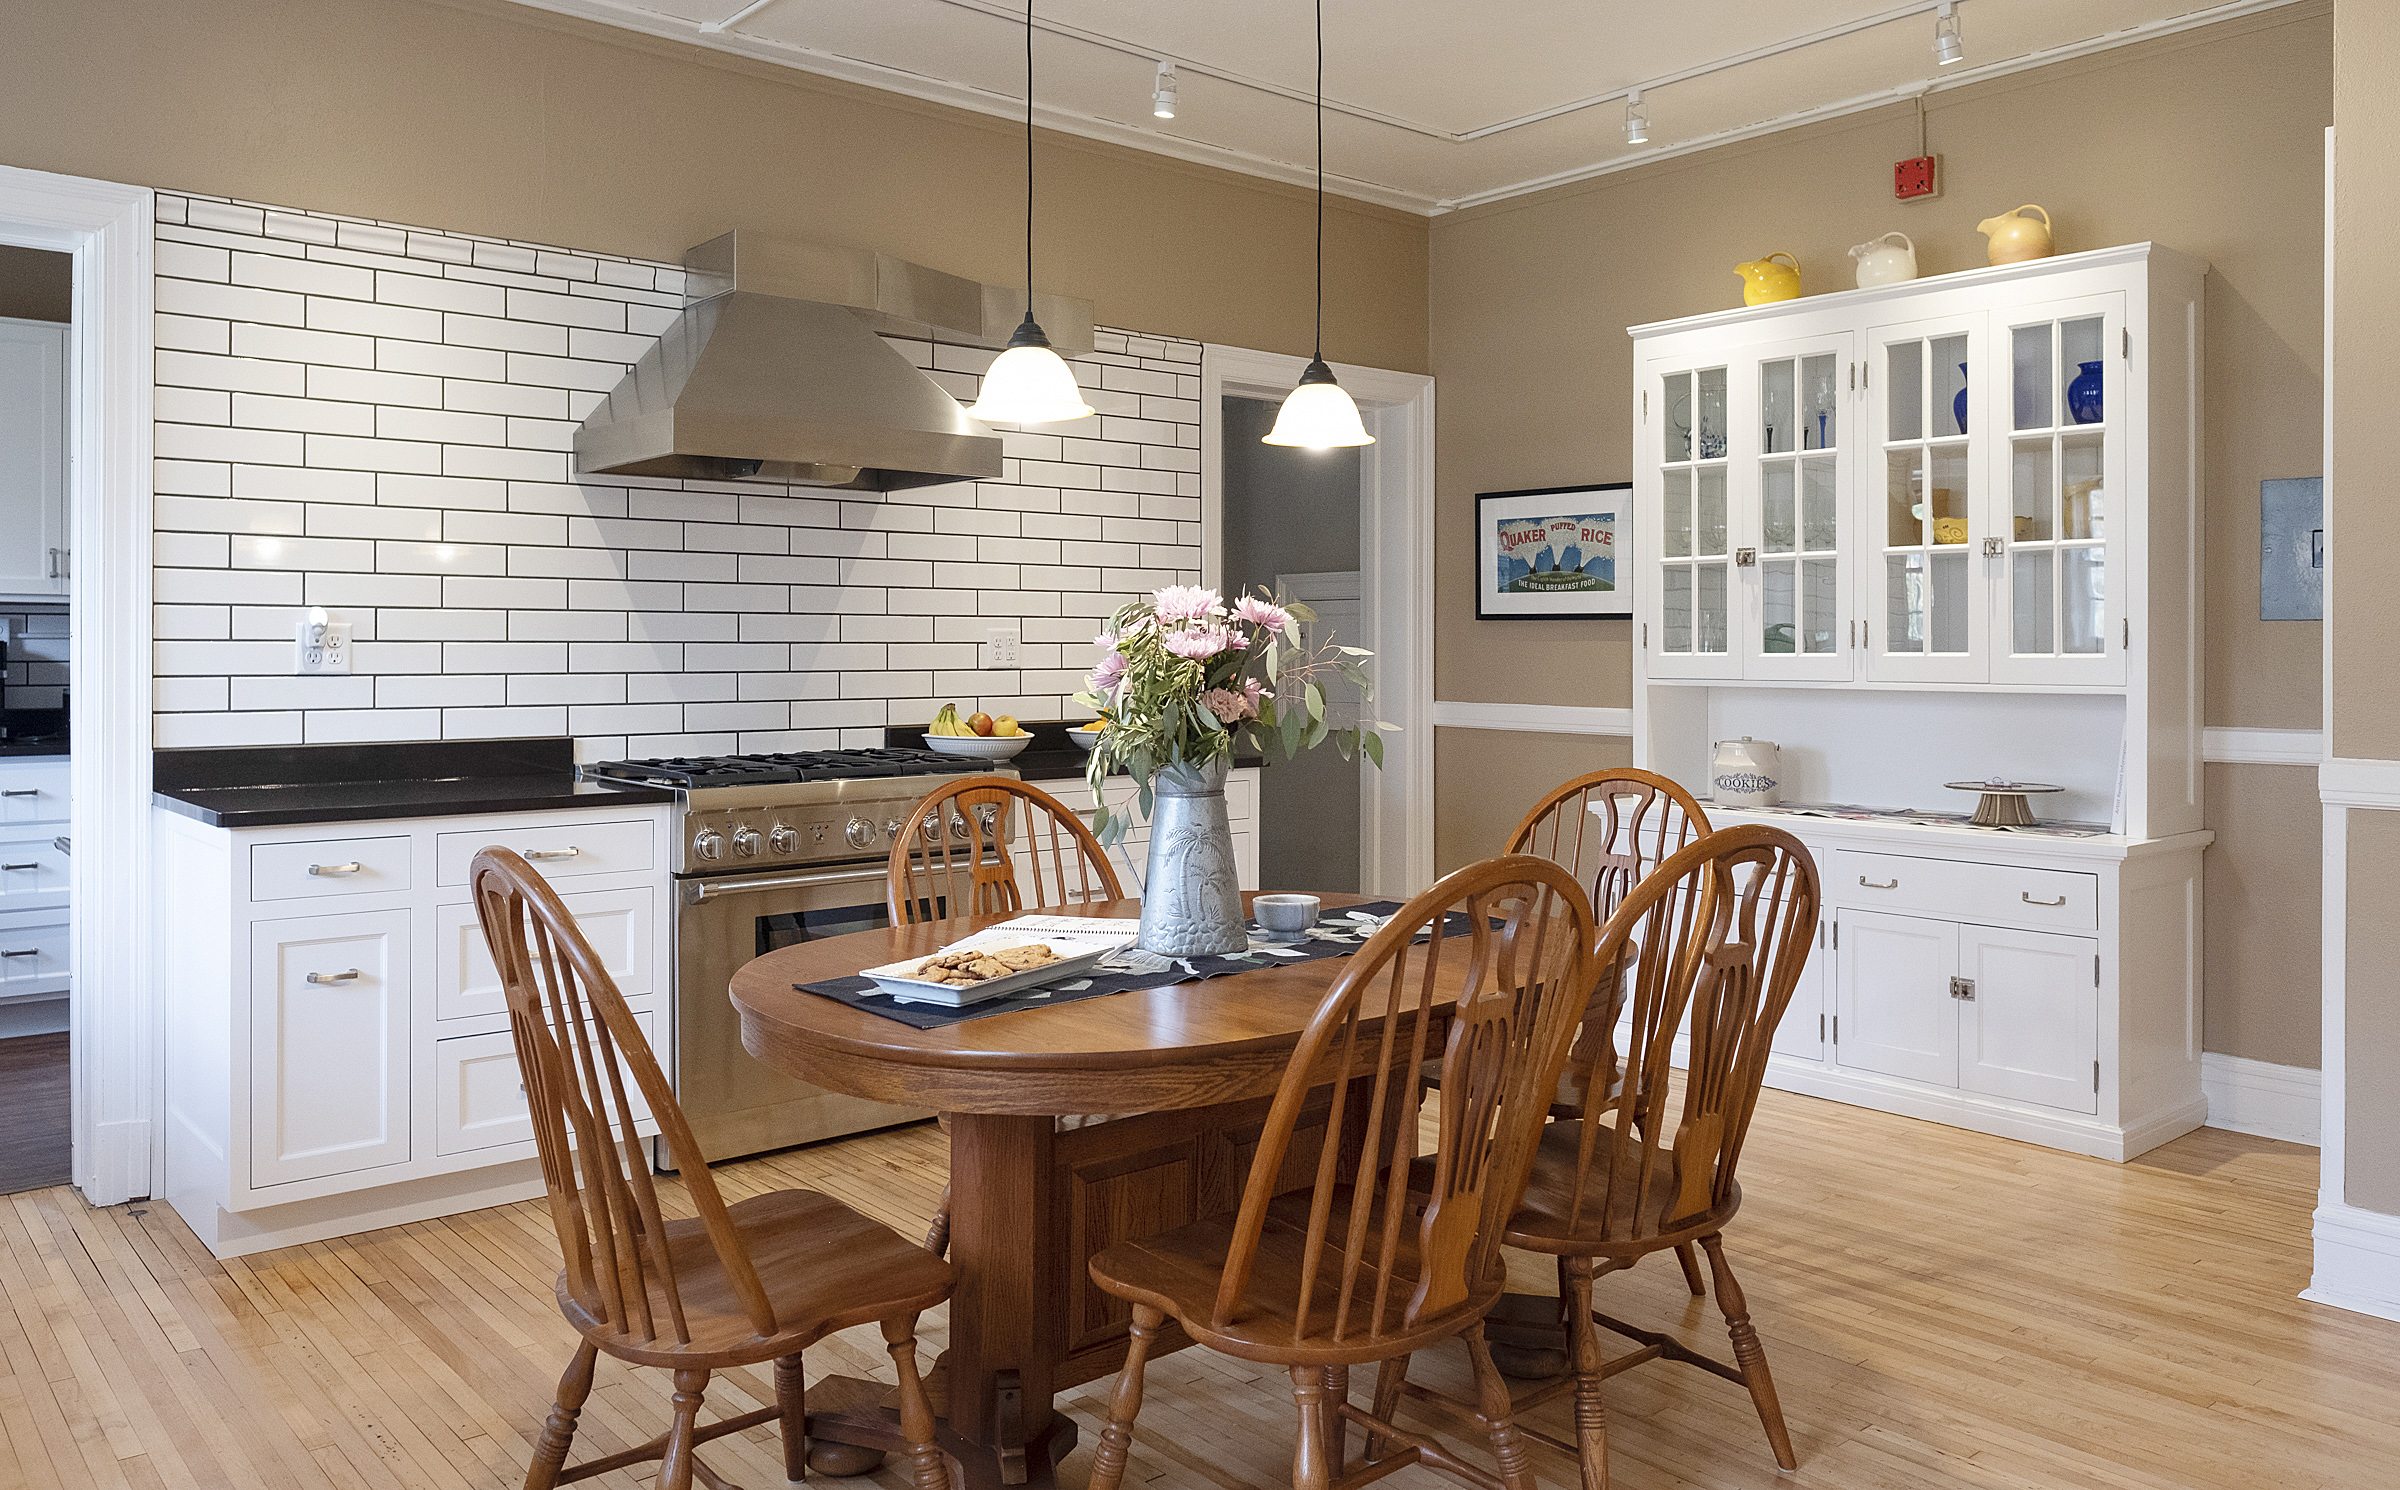 Five chairs around an oak kitchen table with large stainless steel stove and subway tile in the background